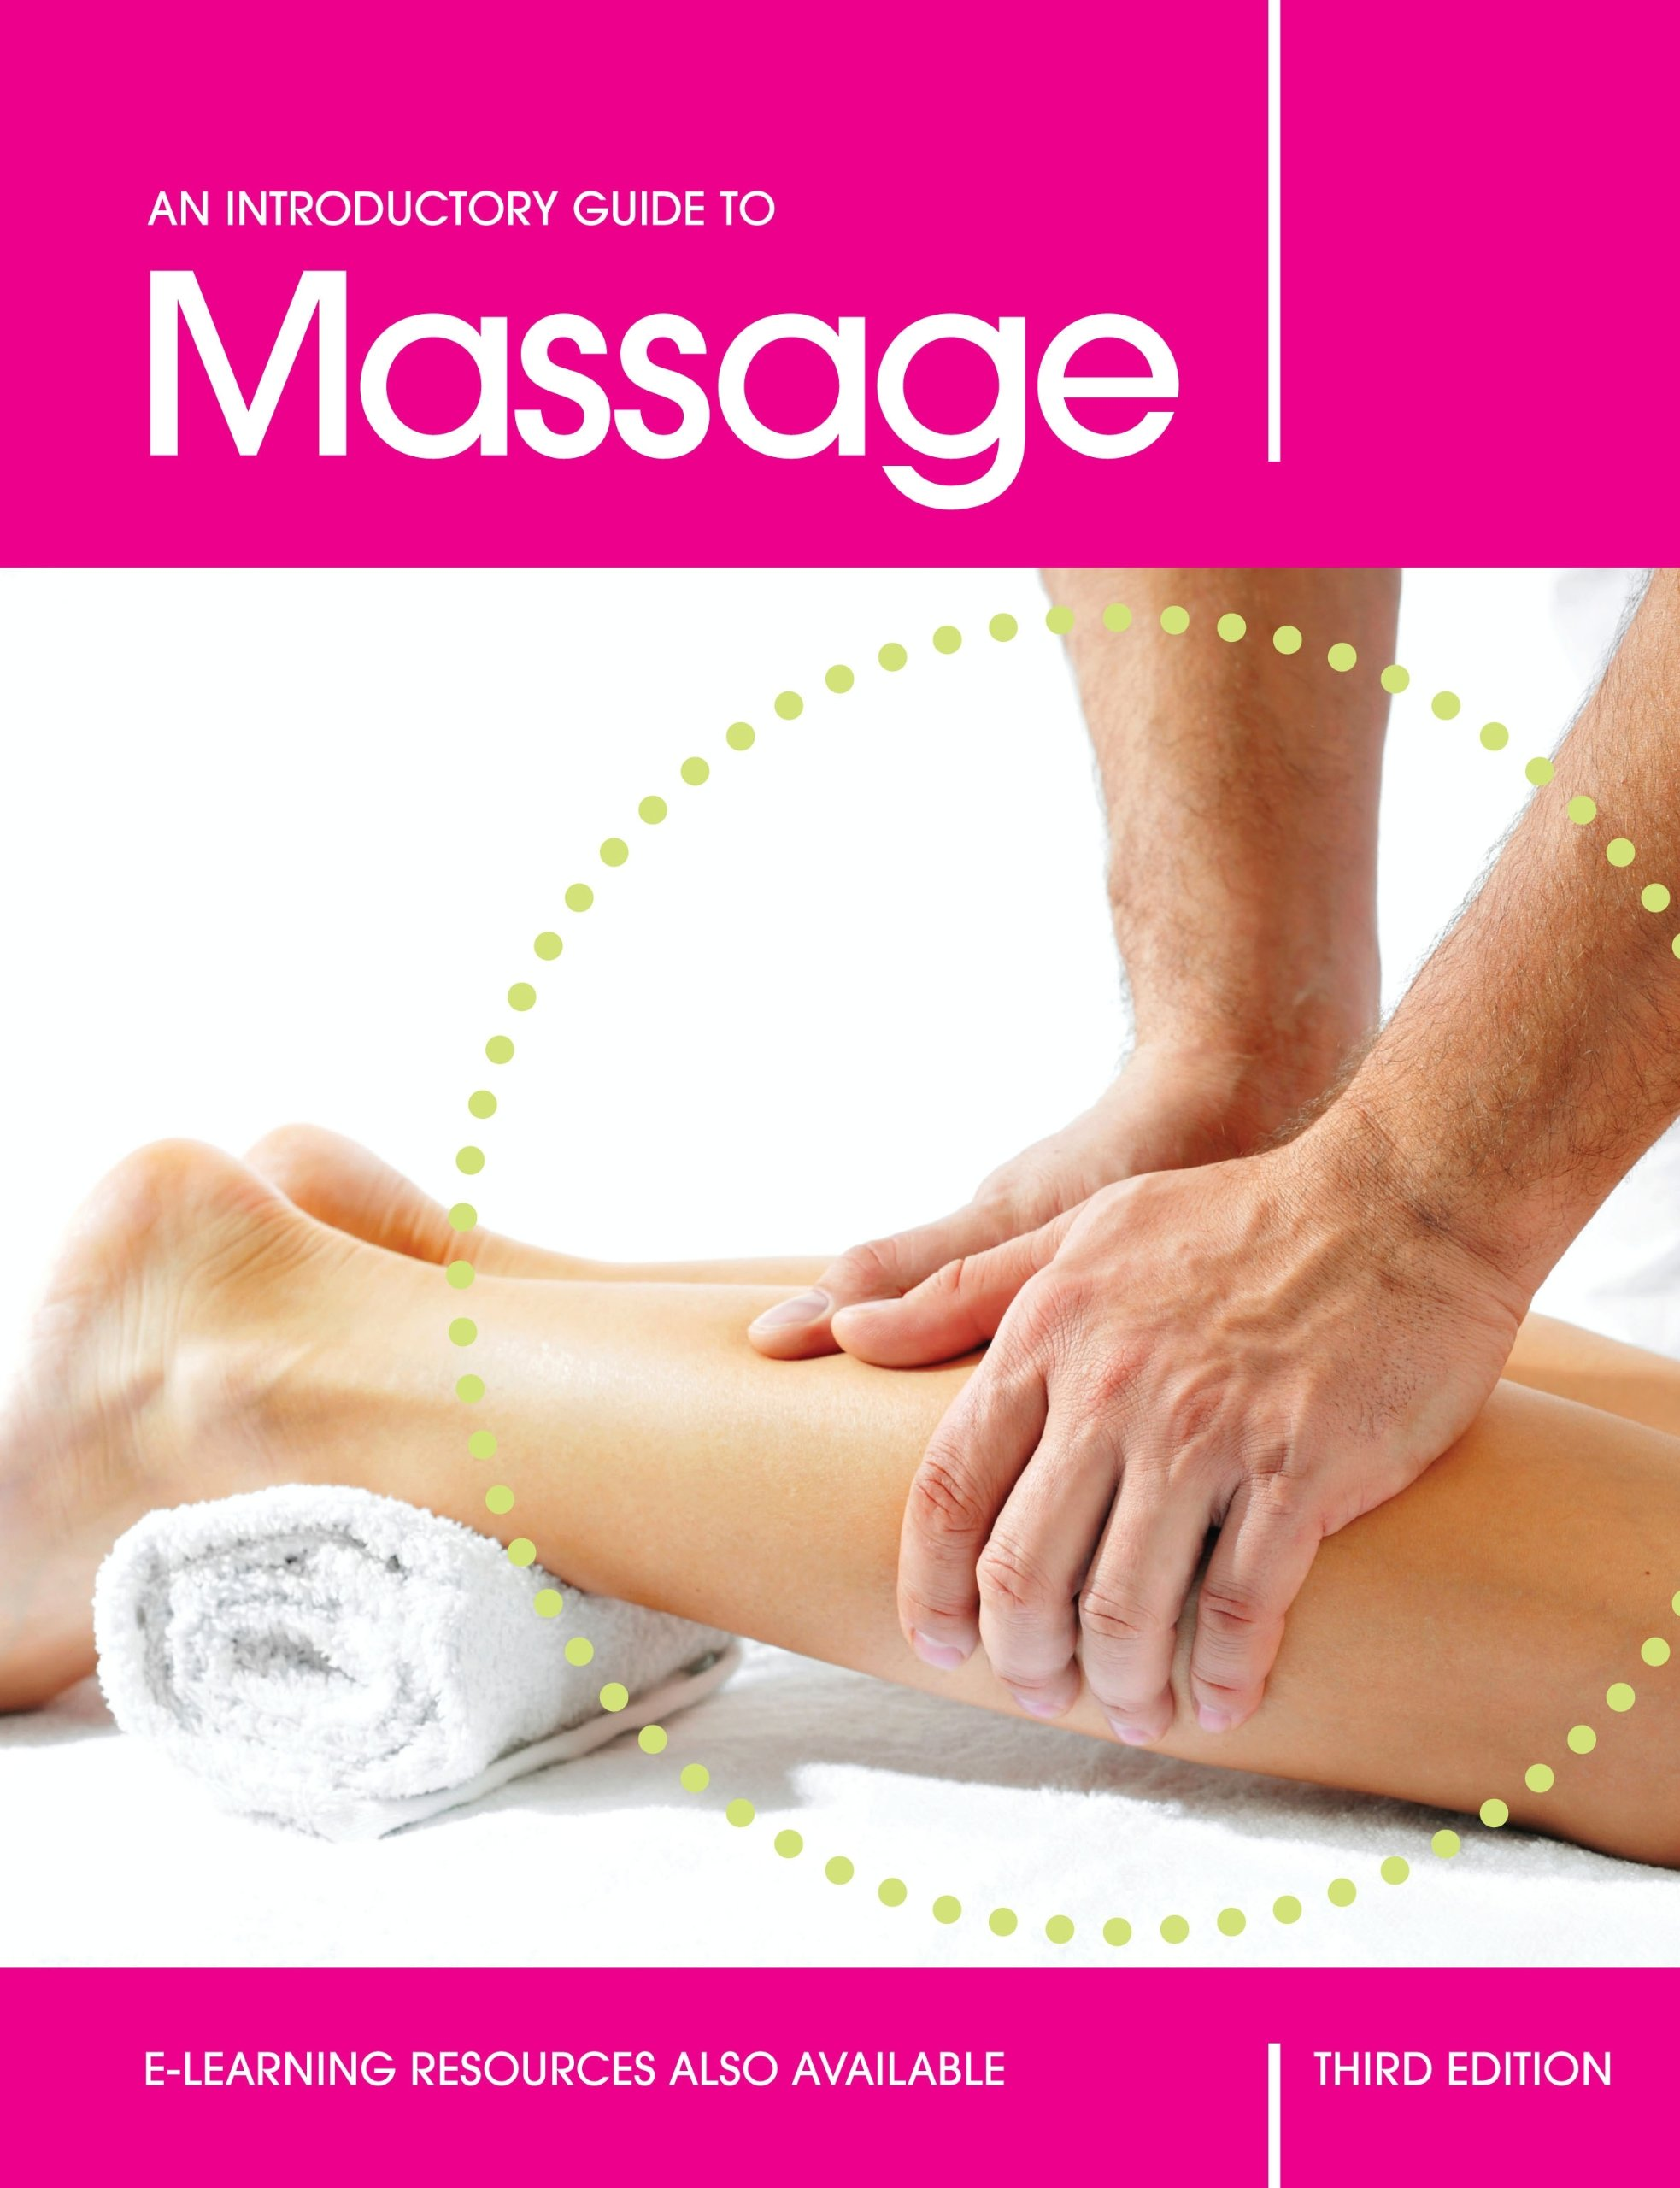 An Introductory Guide to Massage, Third Edition: Amazon.co.uk ...